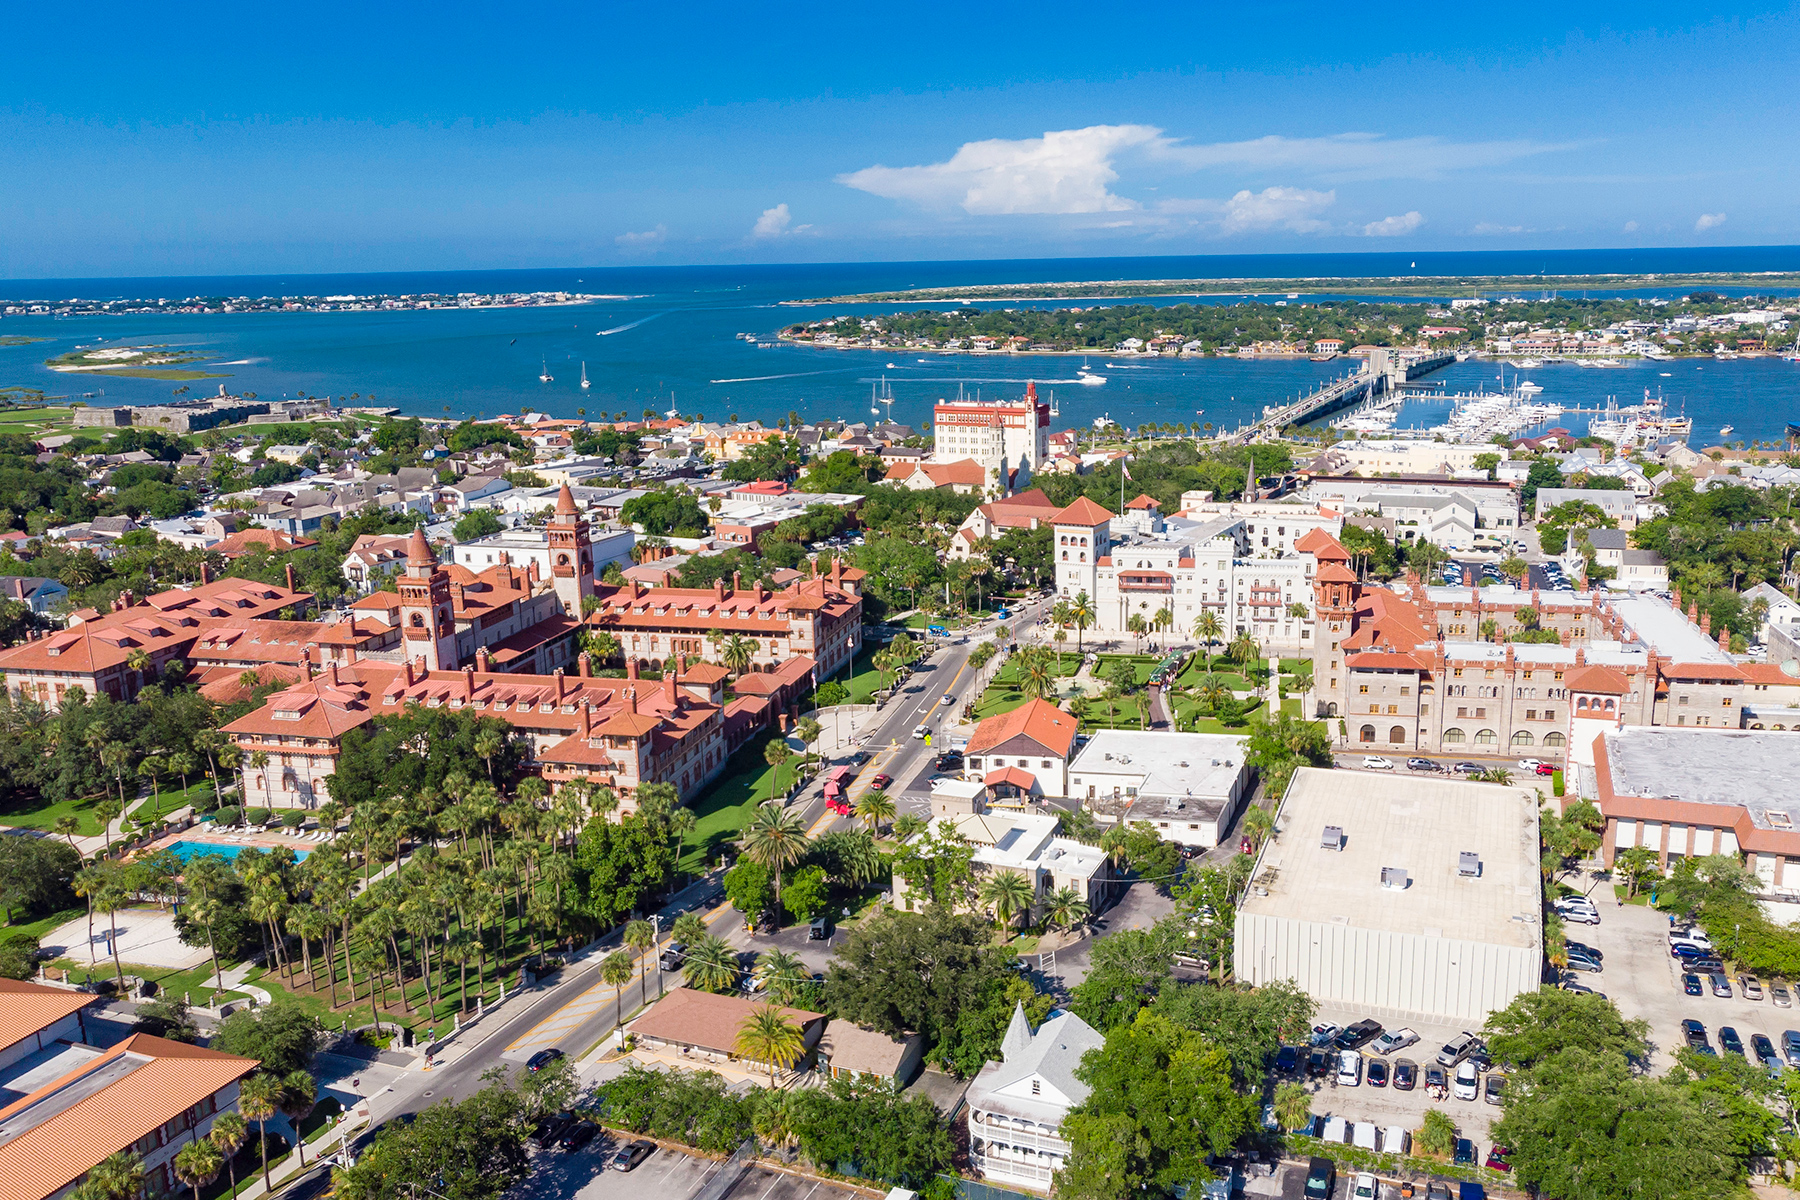 Aerial view of historic St. Augustine, Florida